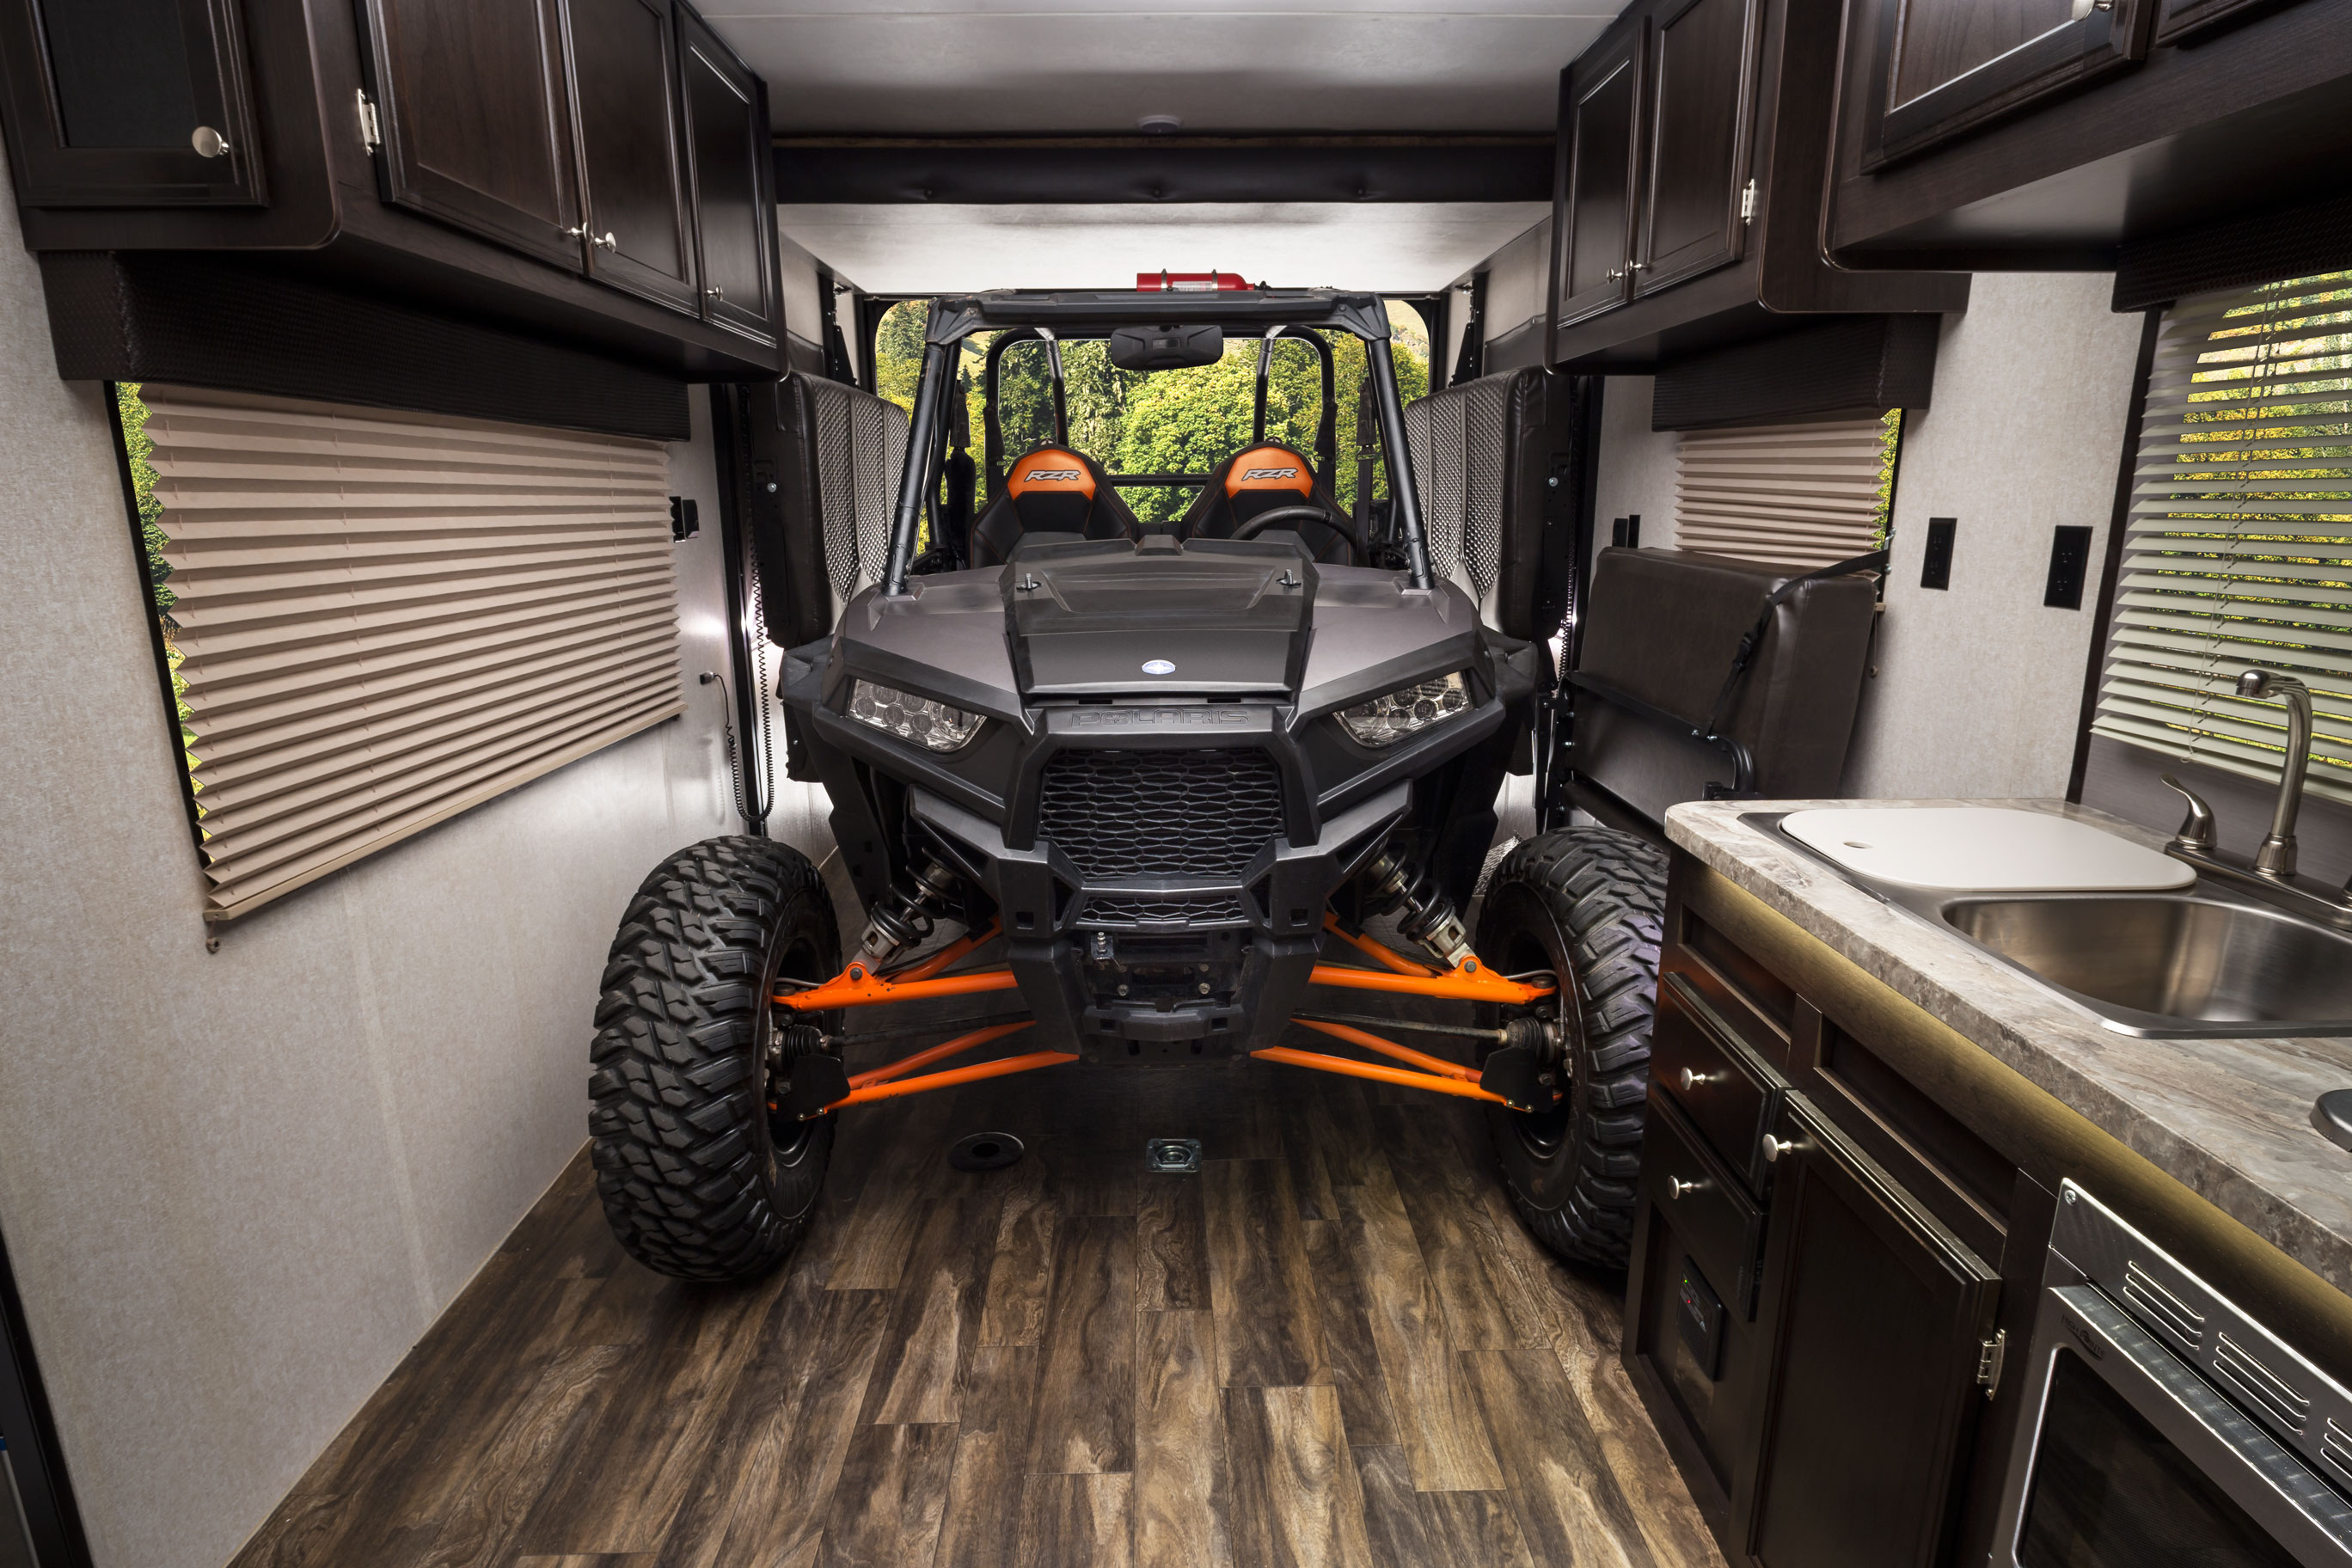 Best Toy Hauler Travel Trailers For Camping Adventures